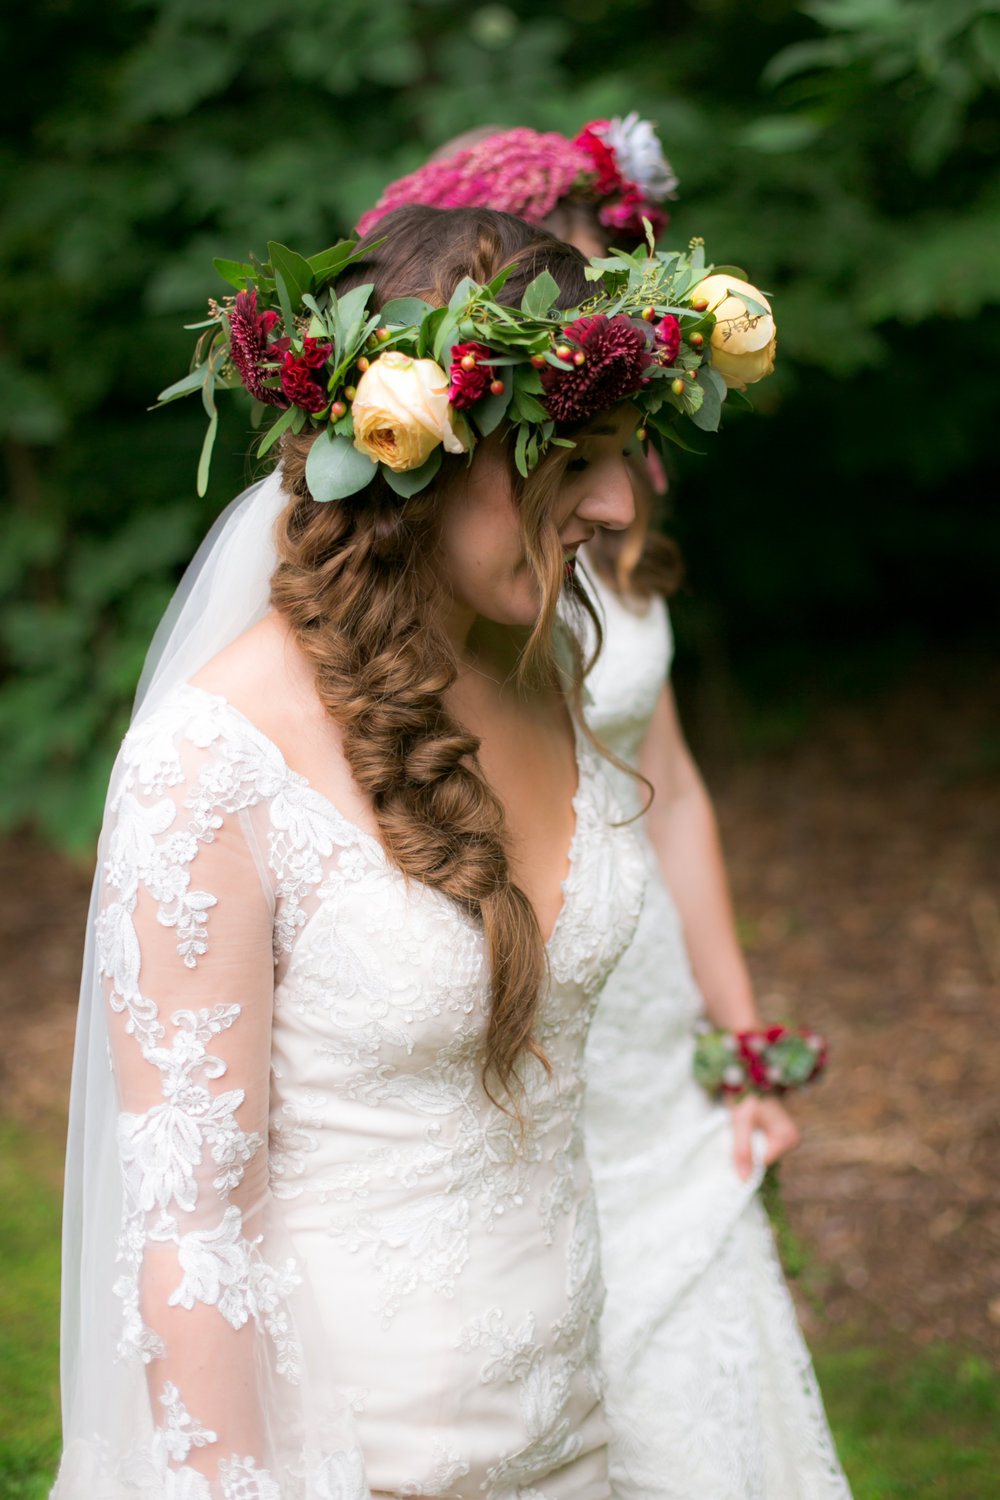 Braided Bridal Hairstyles - Colchester, Connecticut Wedding Photographer